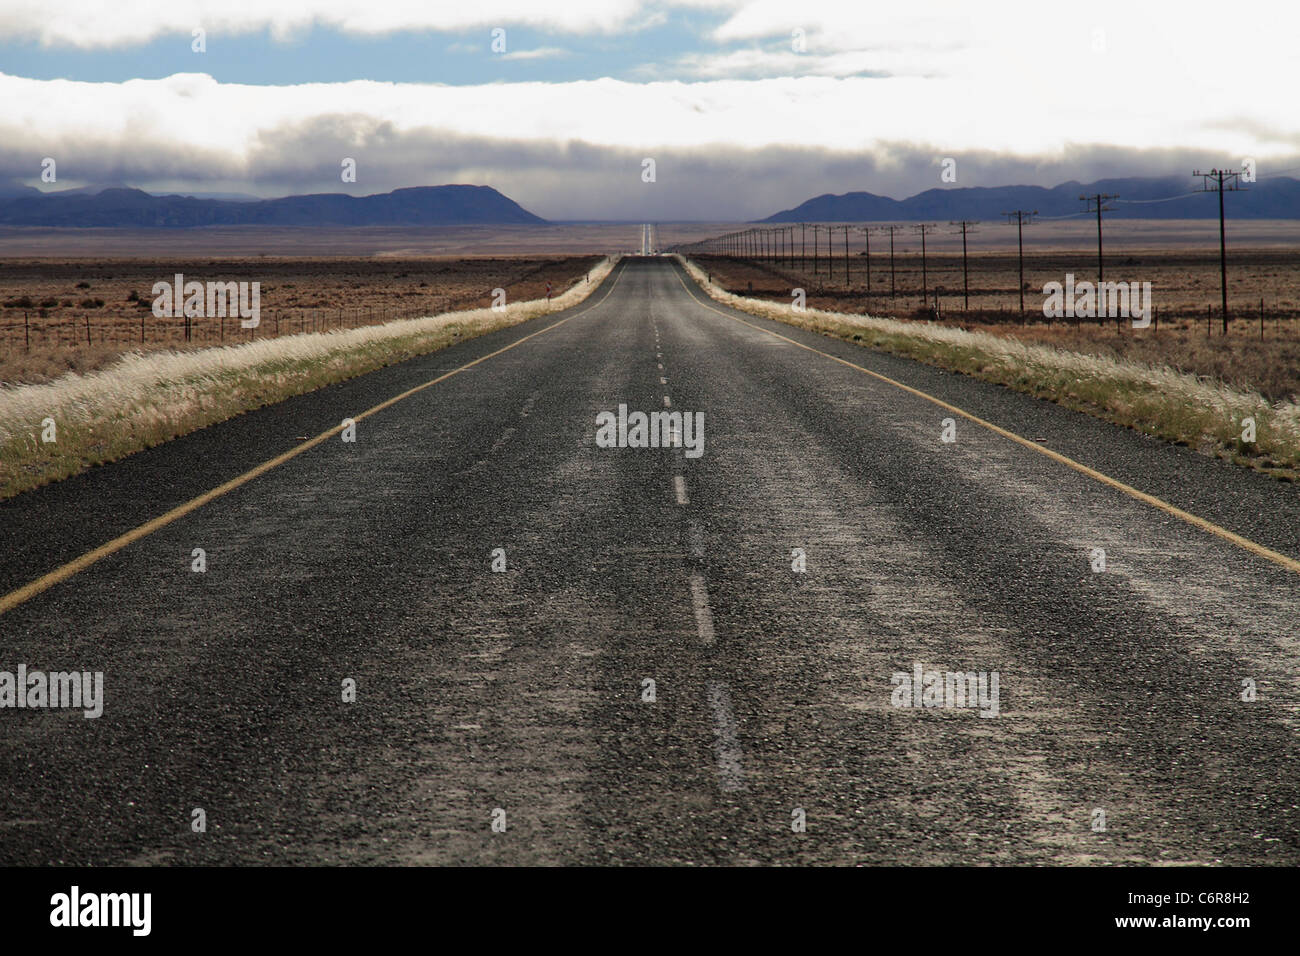 Tar road in remote landscape with motorcycle - Stock Image